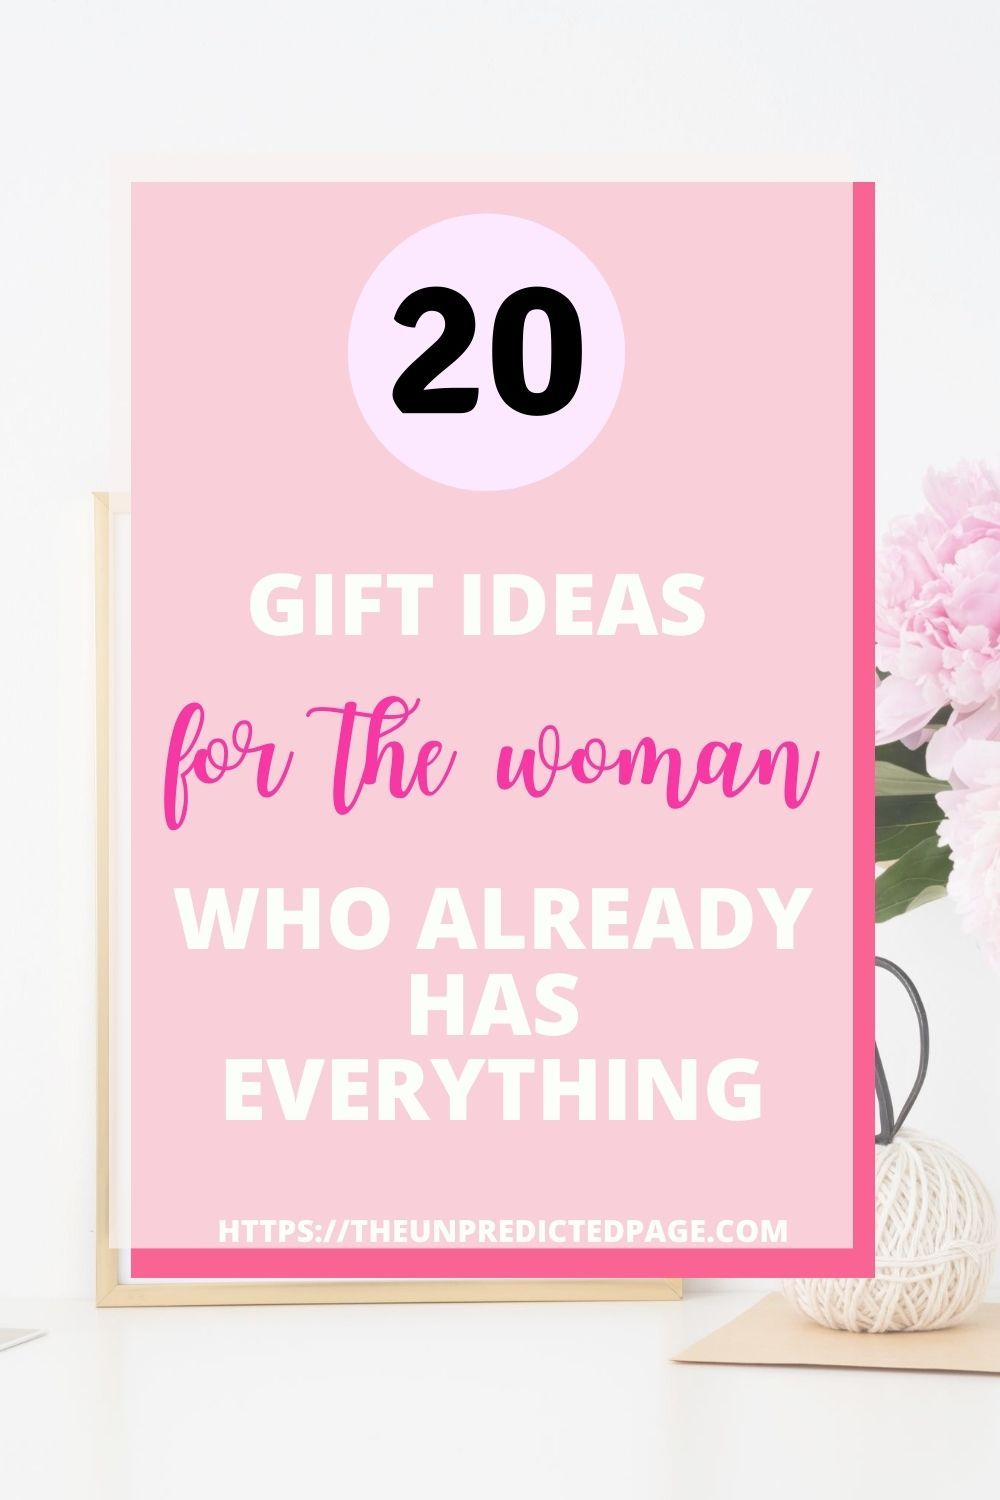 20 budget gift ideas for the woman who already has